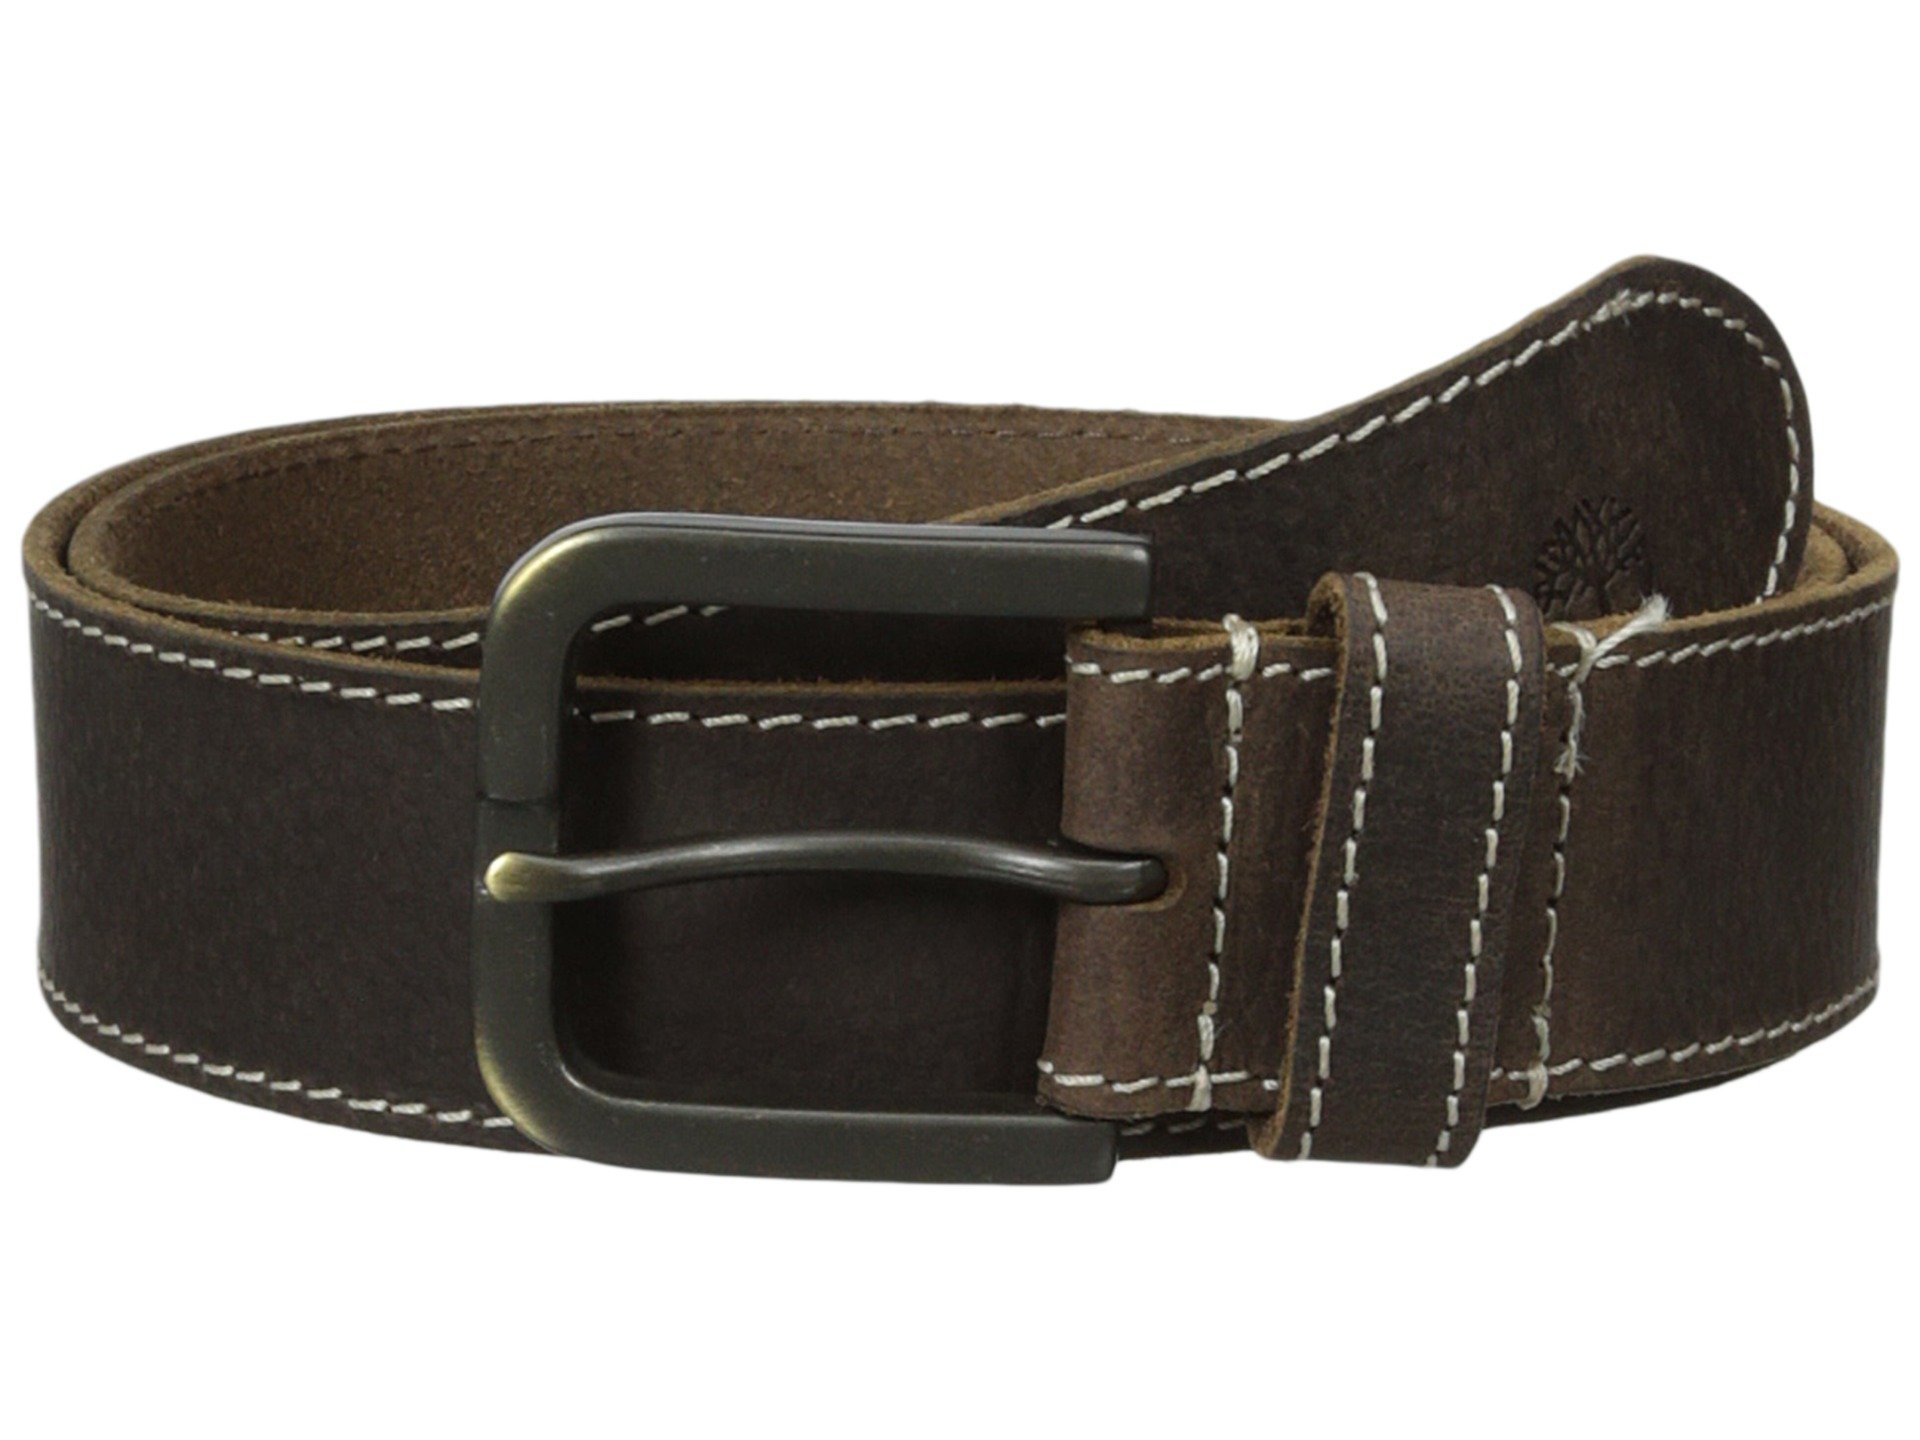 Correa o Cinturon para Hombre Timberland 40mm Oily Milled Belt  + Timberland en VeoyCompro.net